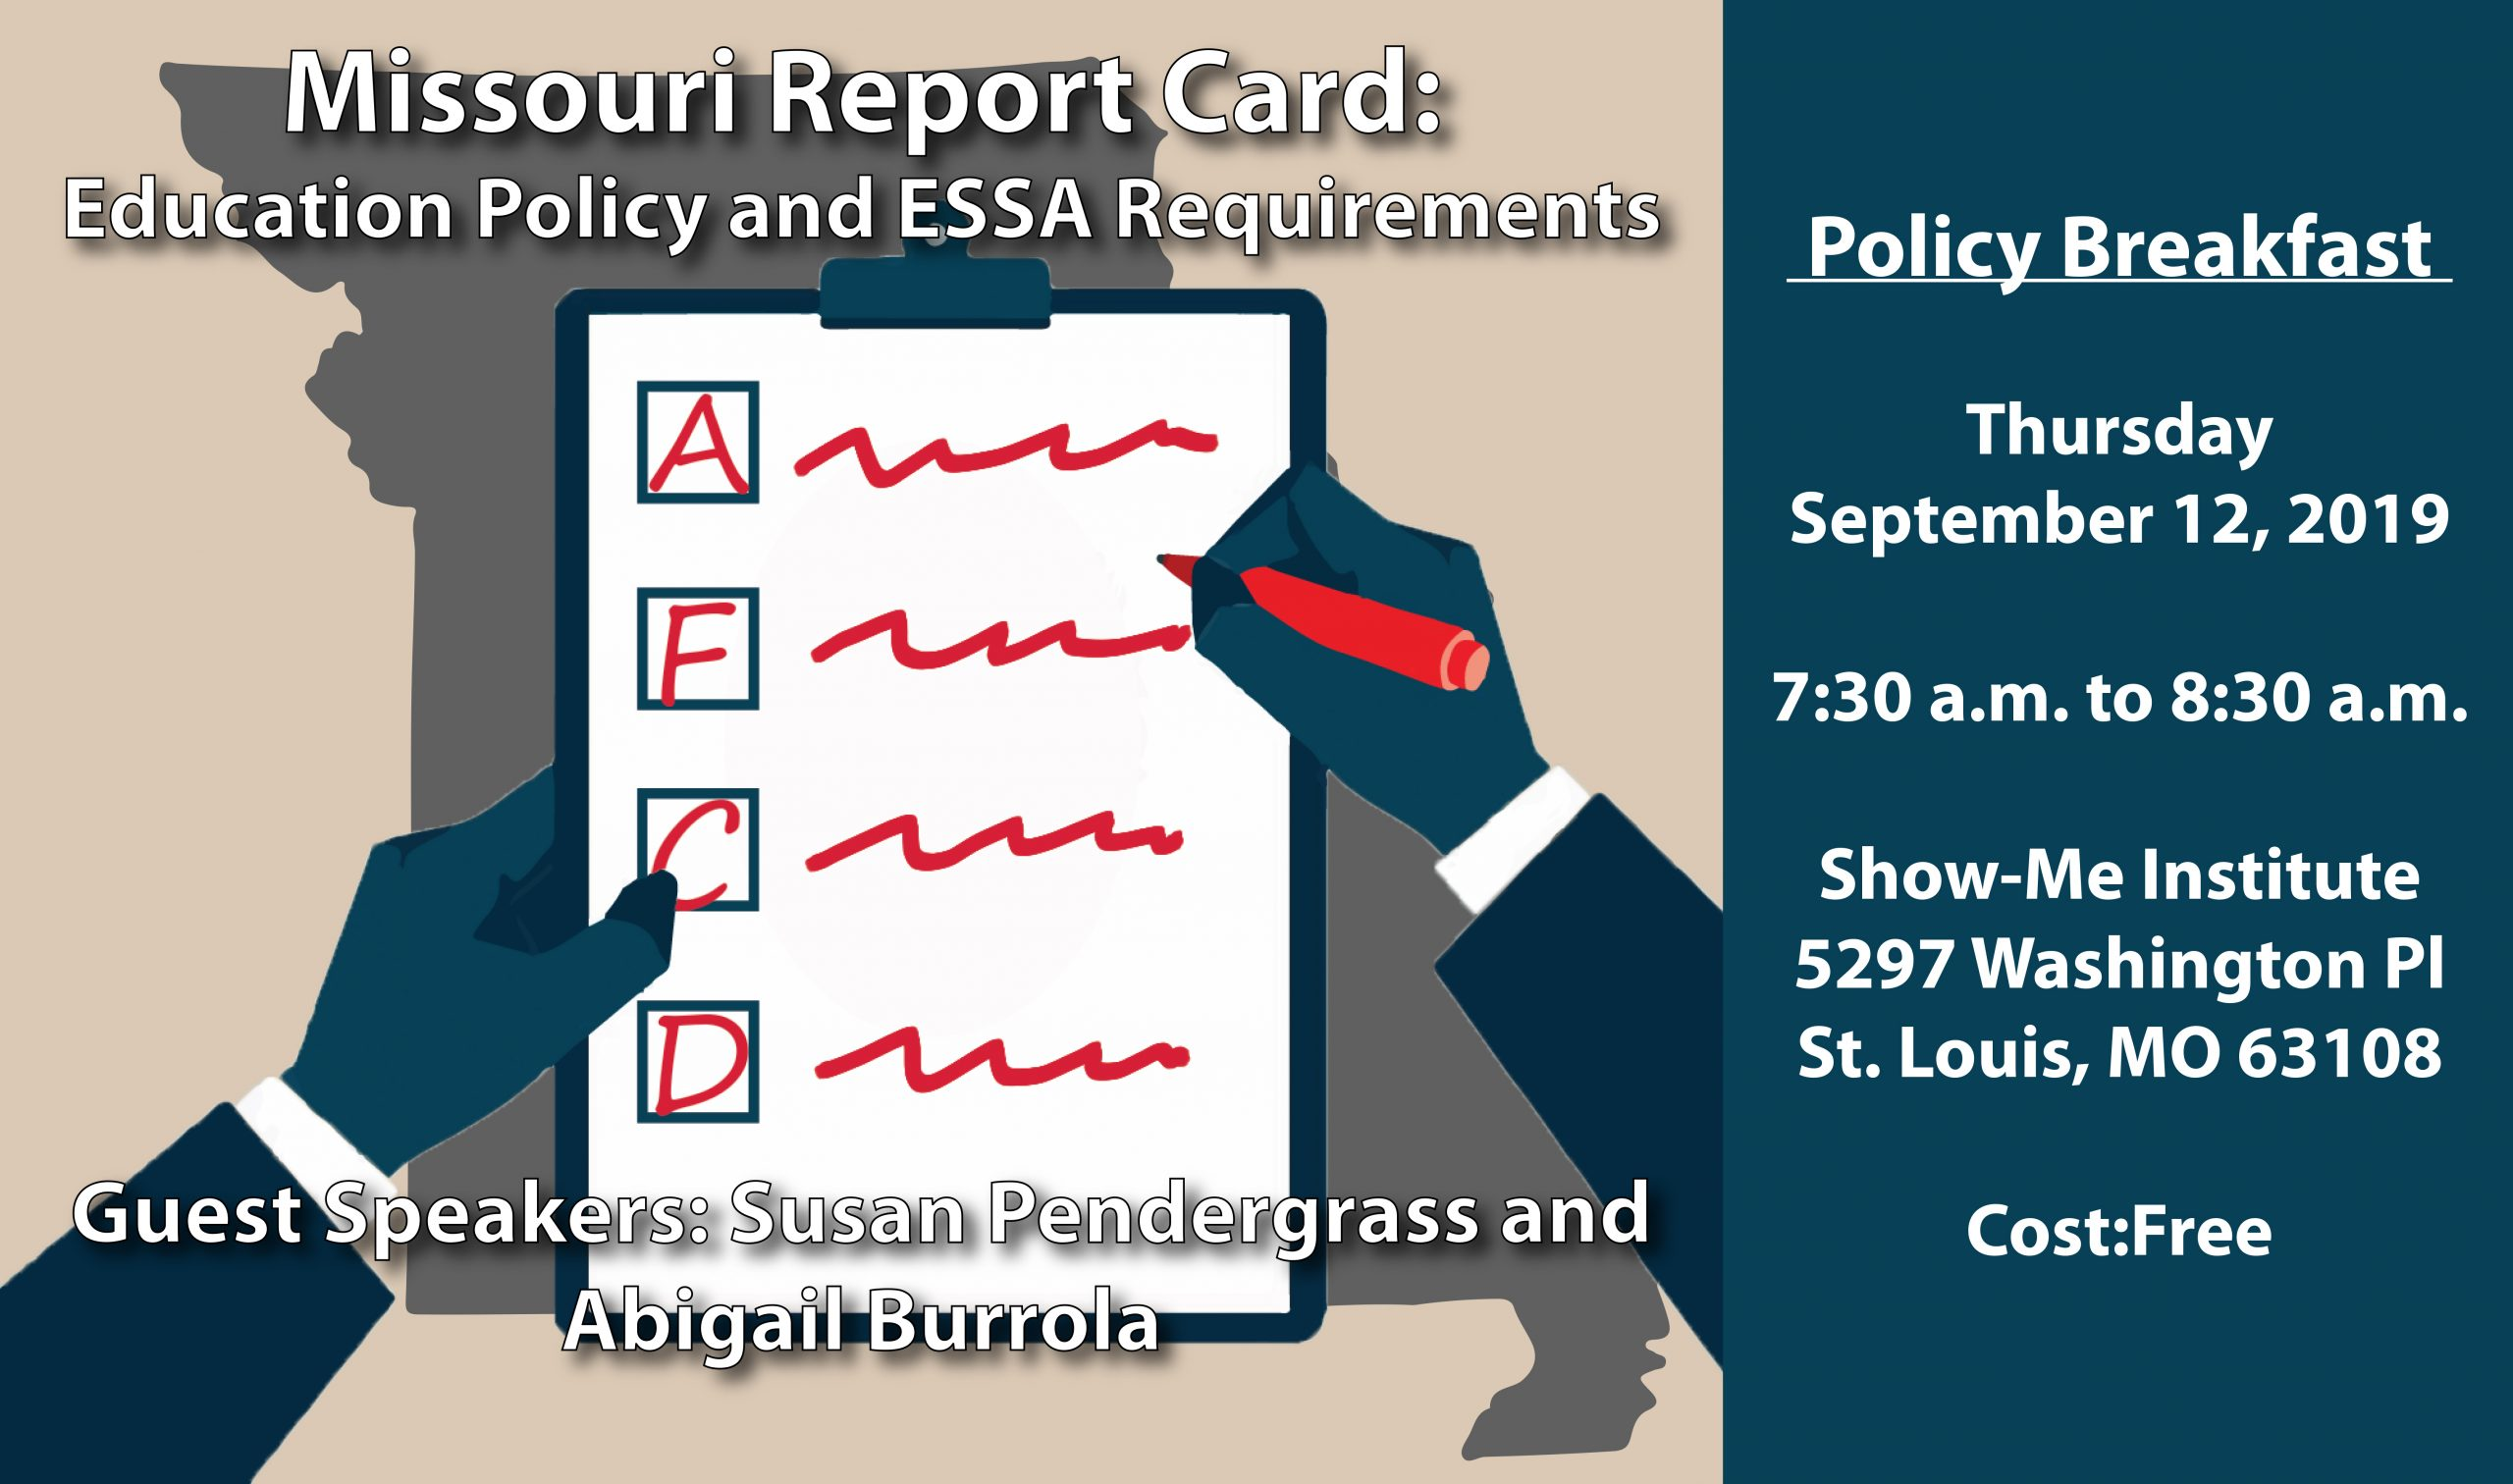 Missouri's Report Card and ESSA Requirements